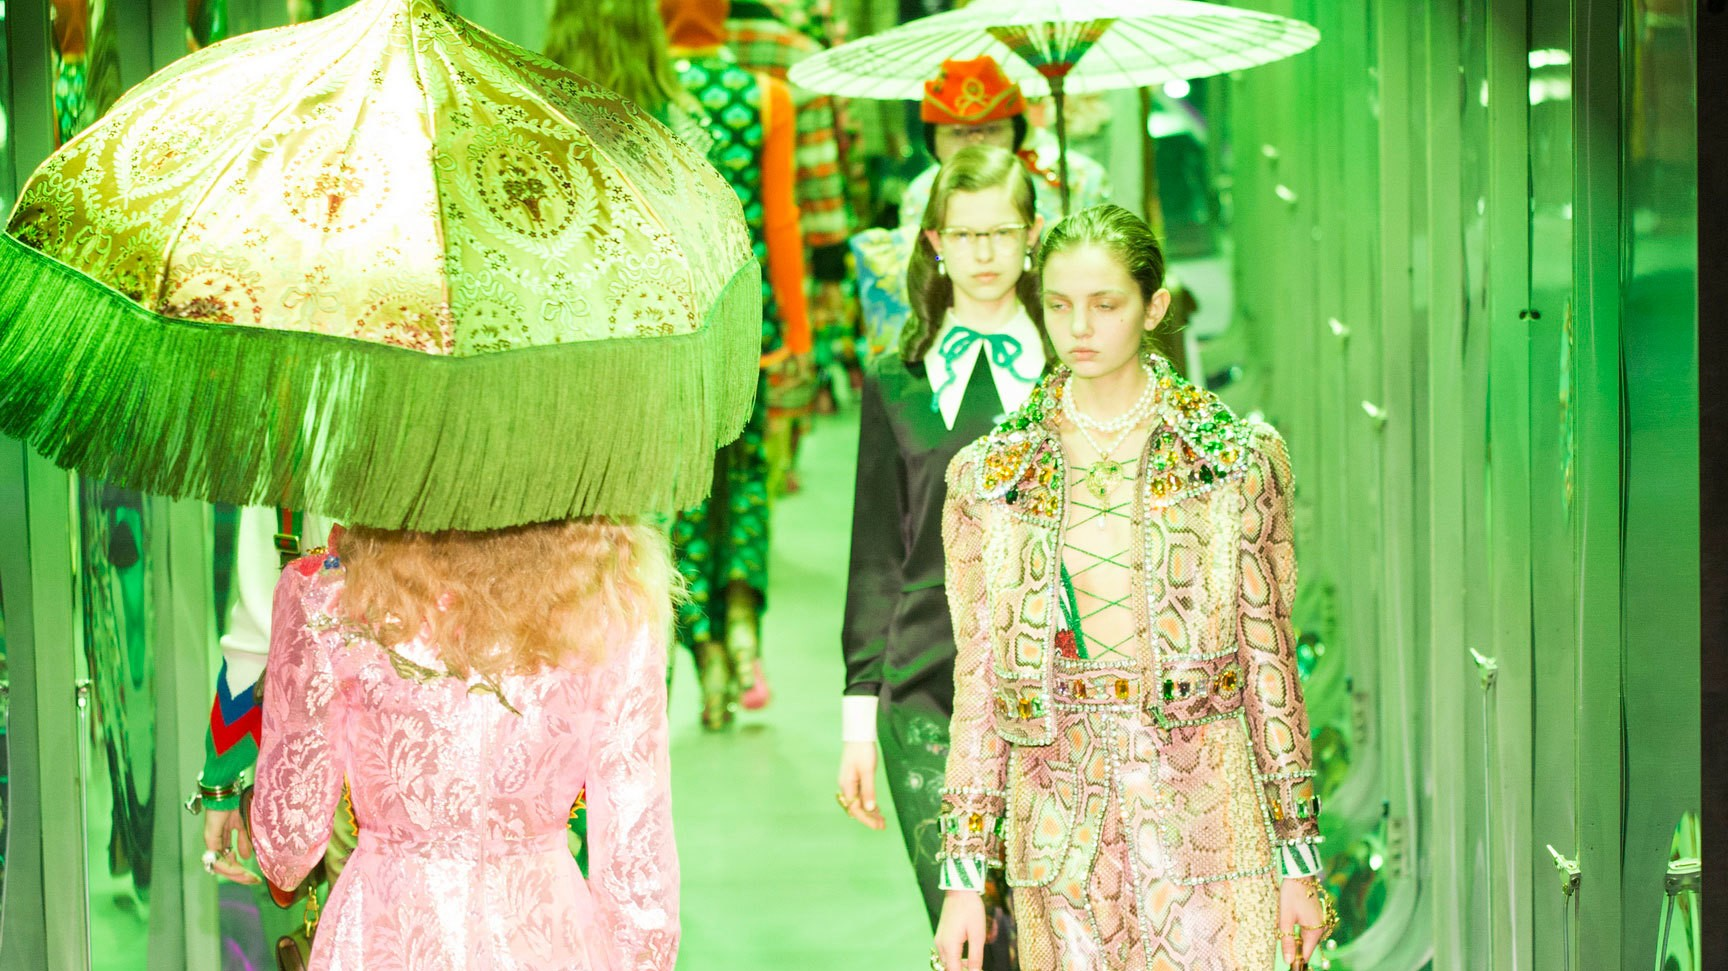 gucci open milan fashion week with a display of modern fashion alchemy